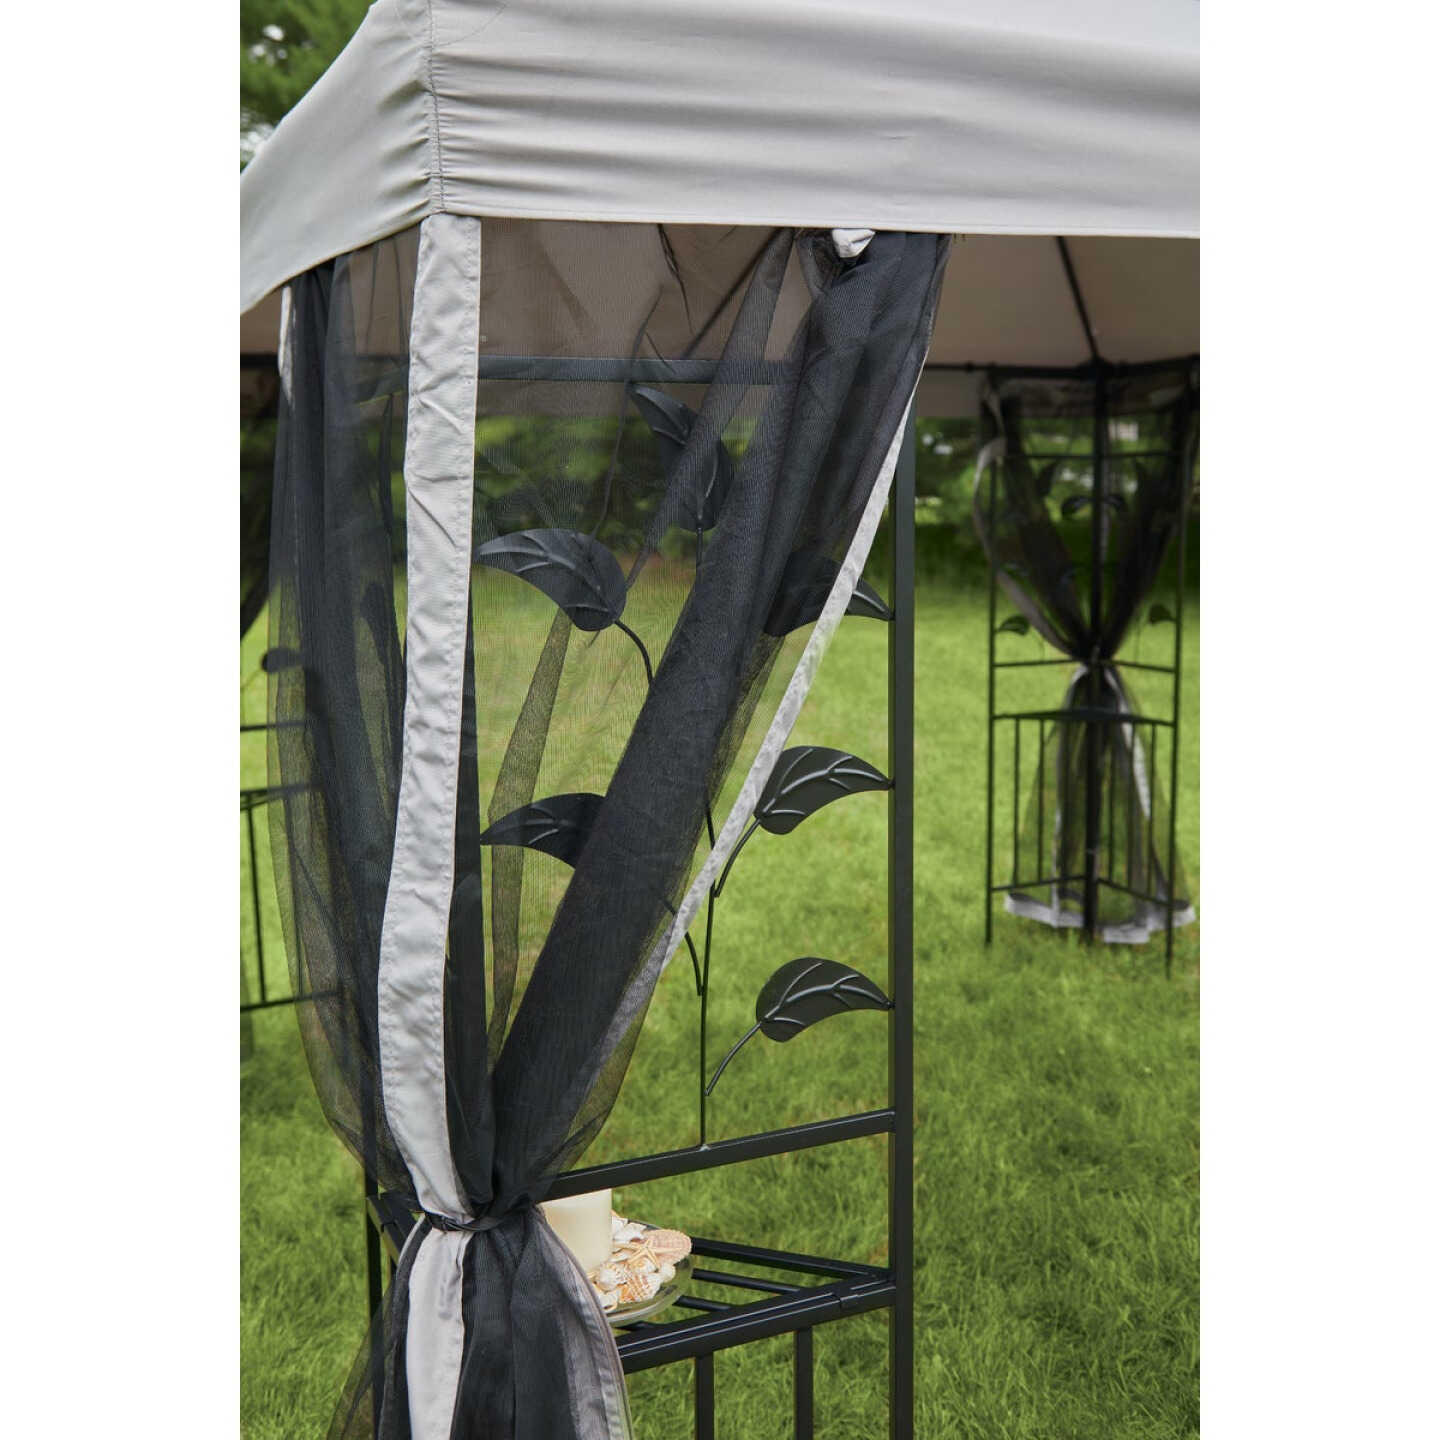 Outdoor Expressions 10 Ft. x 10 Ft. Gray & Black Steel Gazebo with Sides Image 7